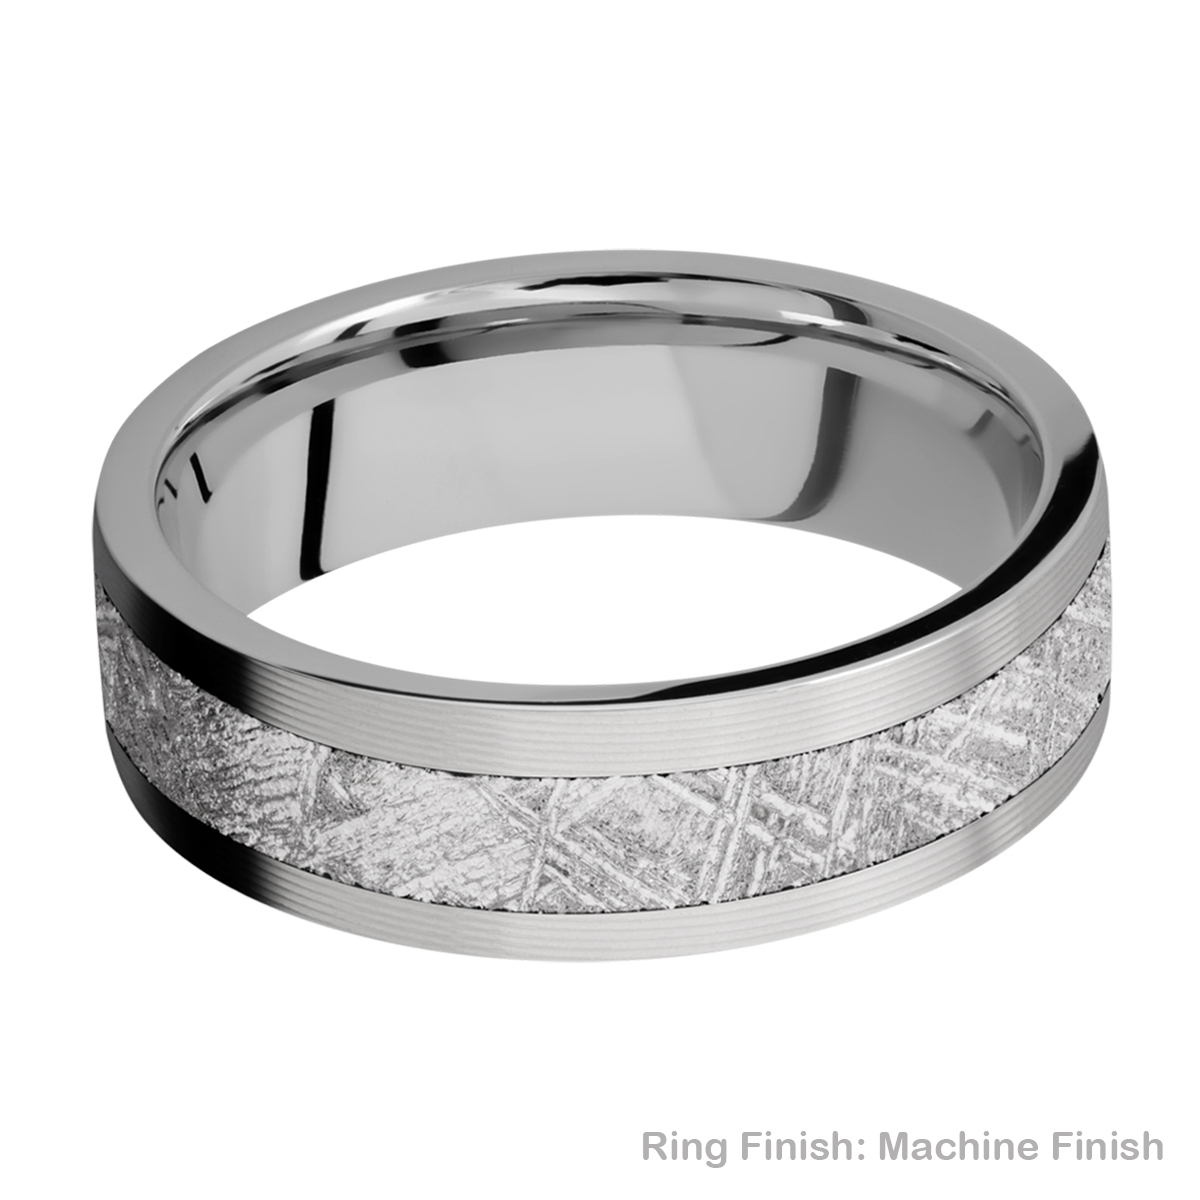 Lashbrook 7F14/METEORITE Titanium Wedding Ring or Band Alternative View 9